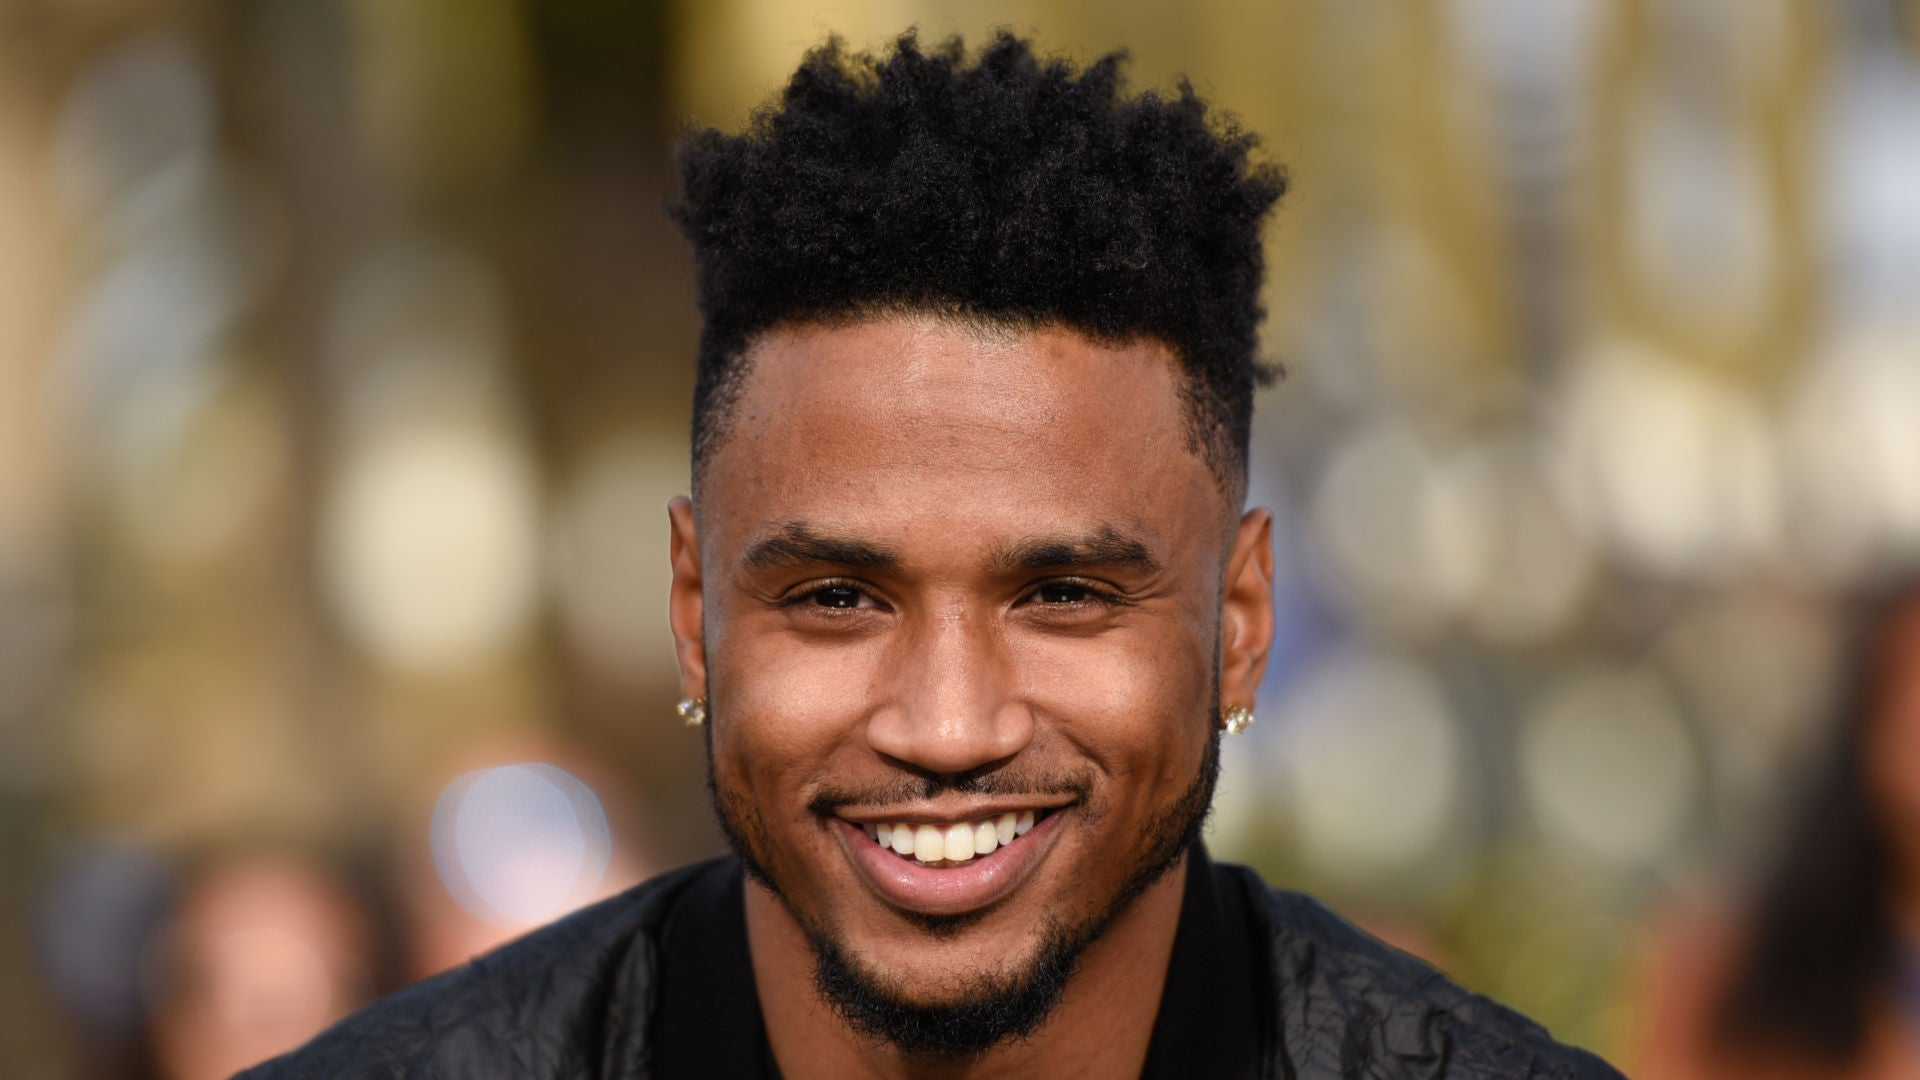 Breathe, Trey's Angels! Here's Everything We Know About Trey Songz Becoming A Dad